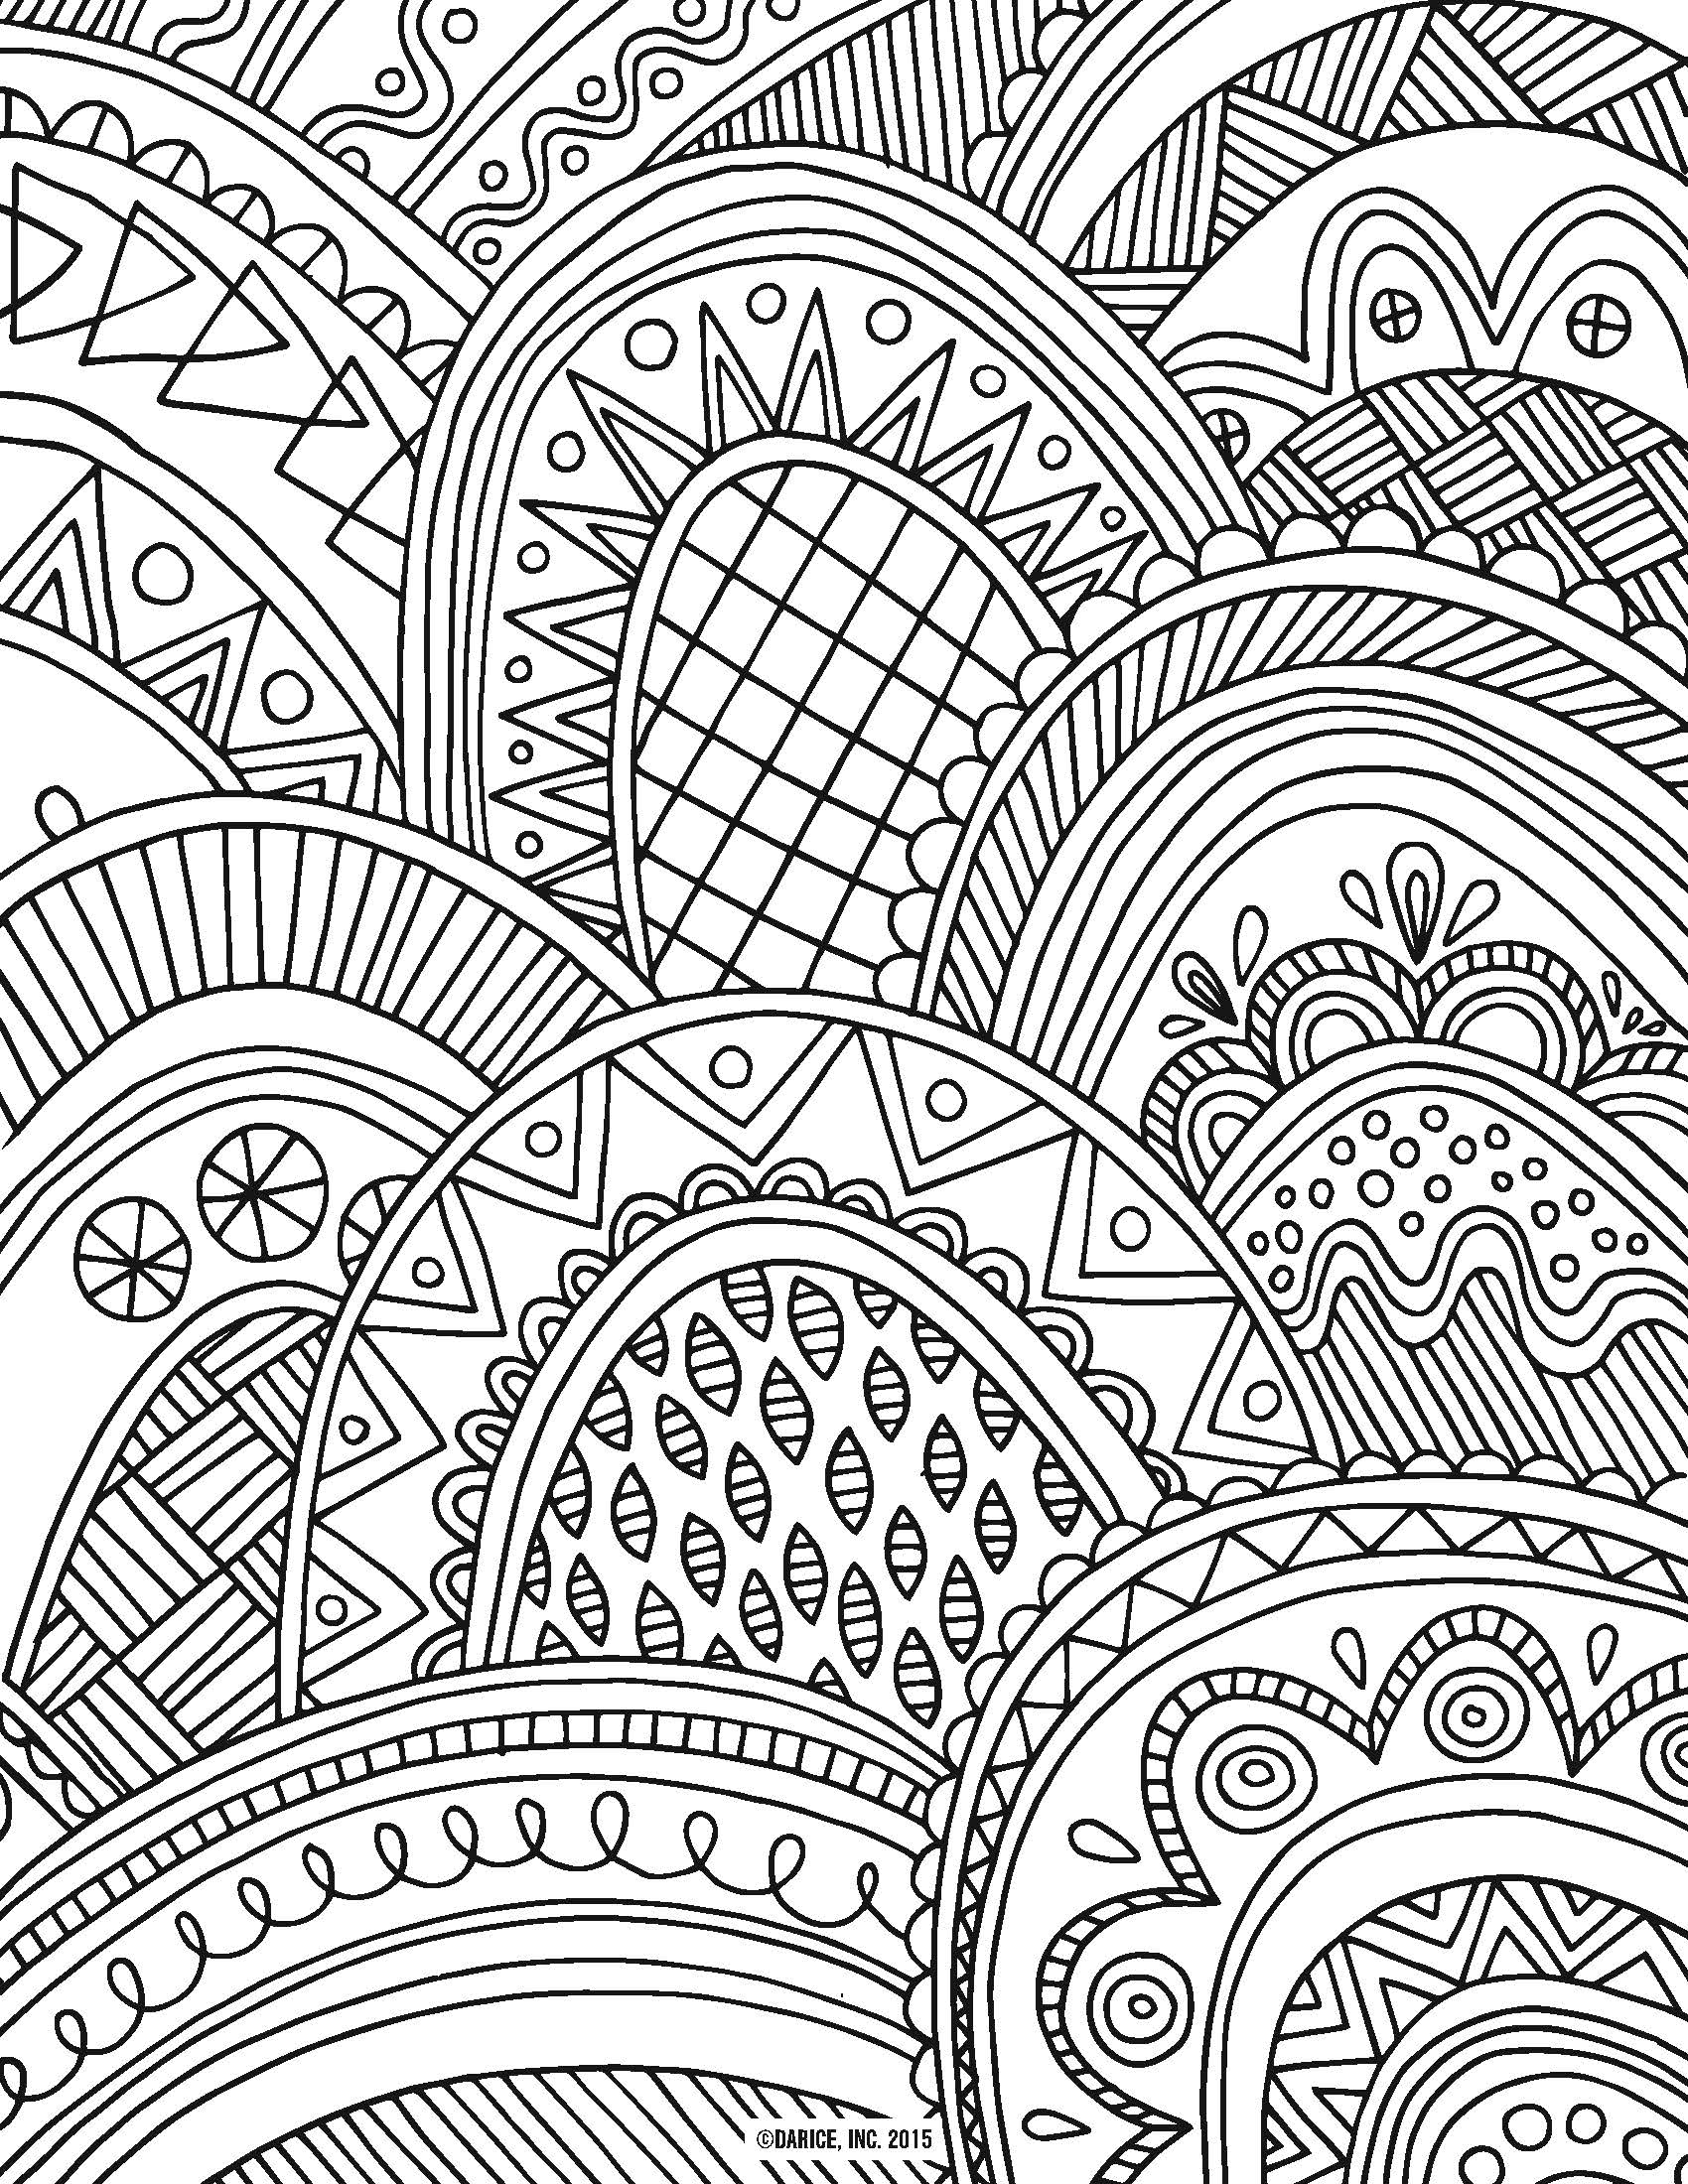 free printable design coloring pages free printable abstract coloring pages for adults pages design free printable coloring